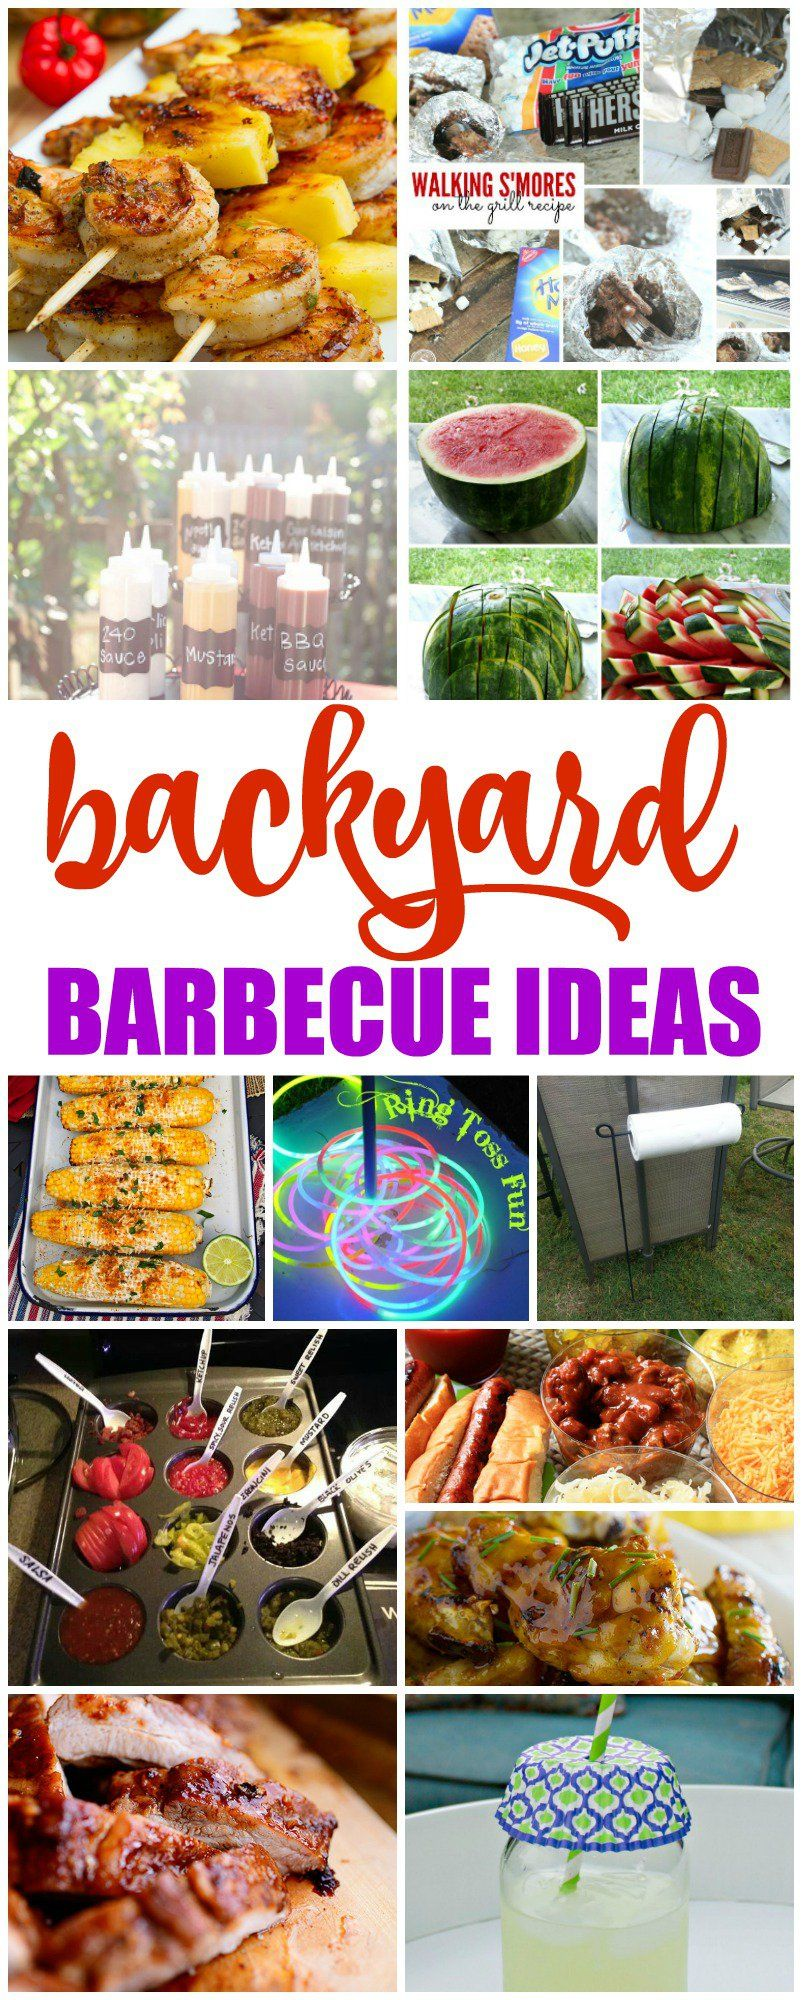 backyard bbq ideas barbecue recipes and crafts for family fun all